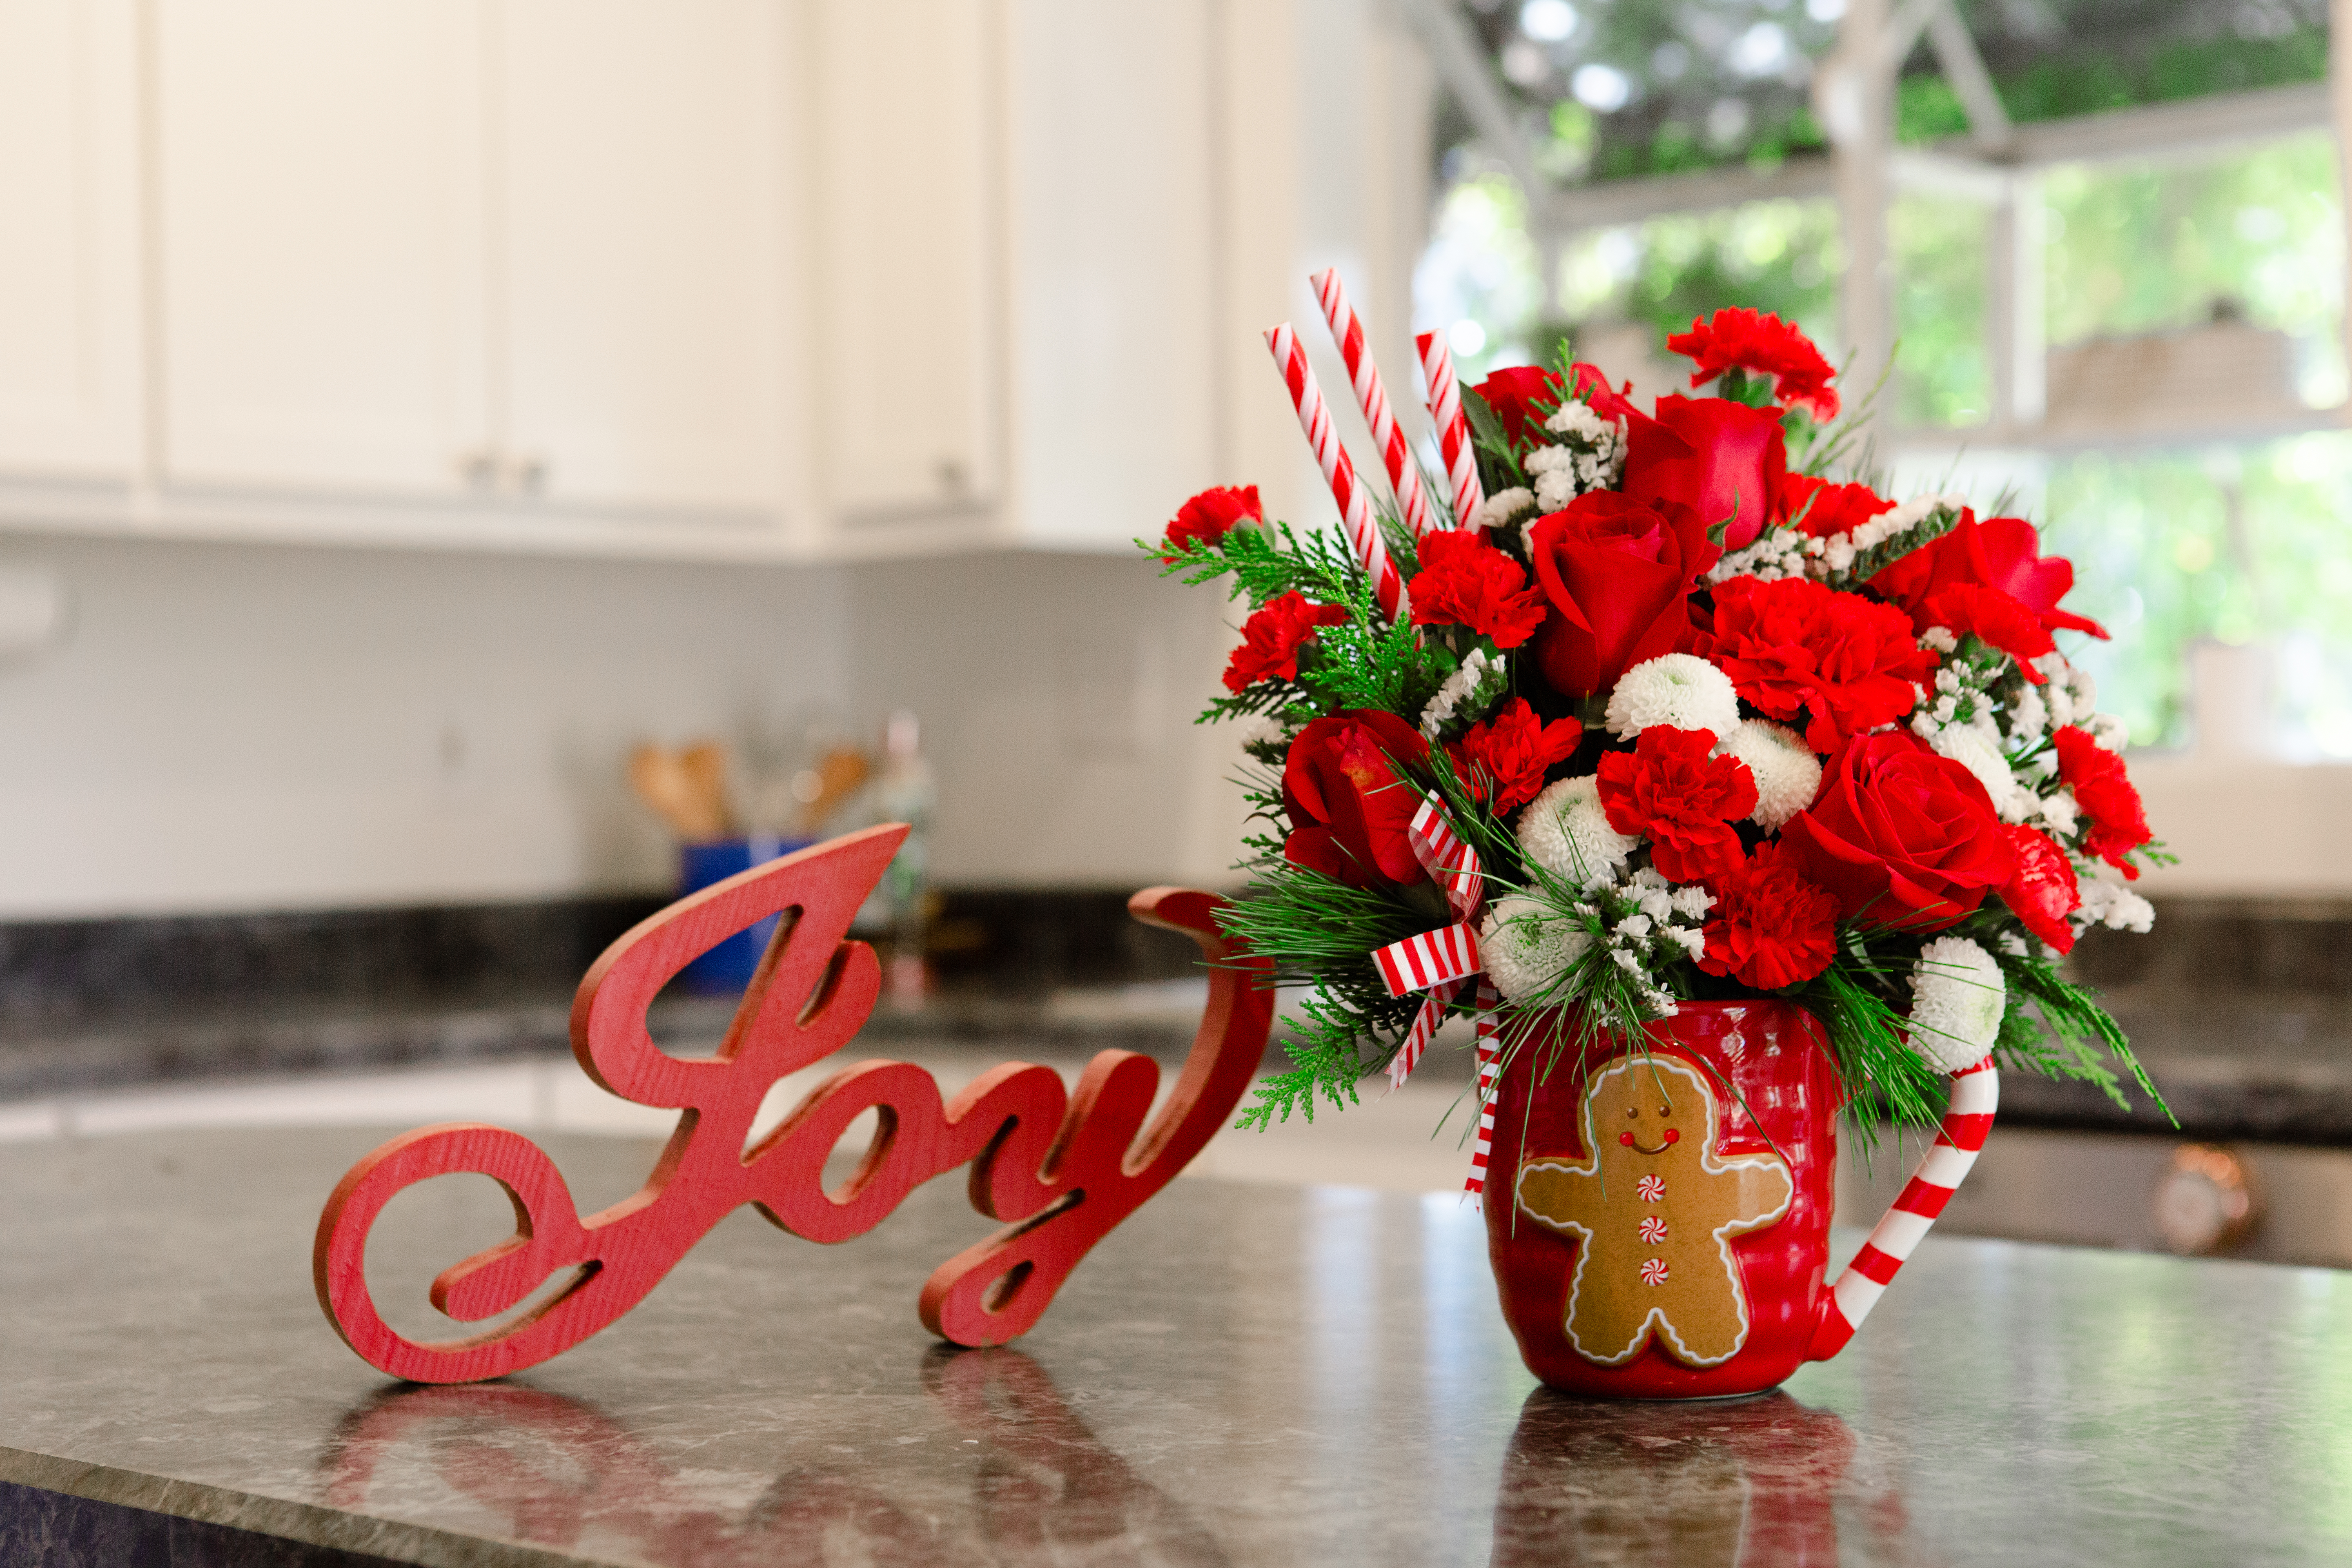 Red gingerbread coffee mug filled with red roses, white mums, red carnations, greenery and more next to a joy wooden letters.